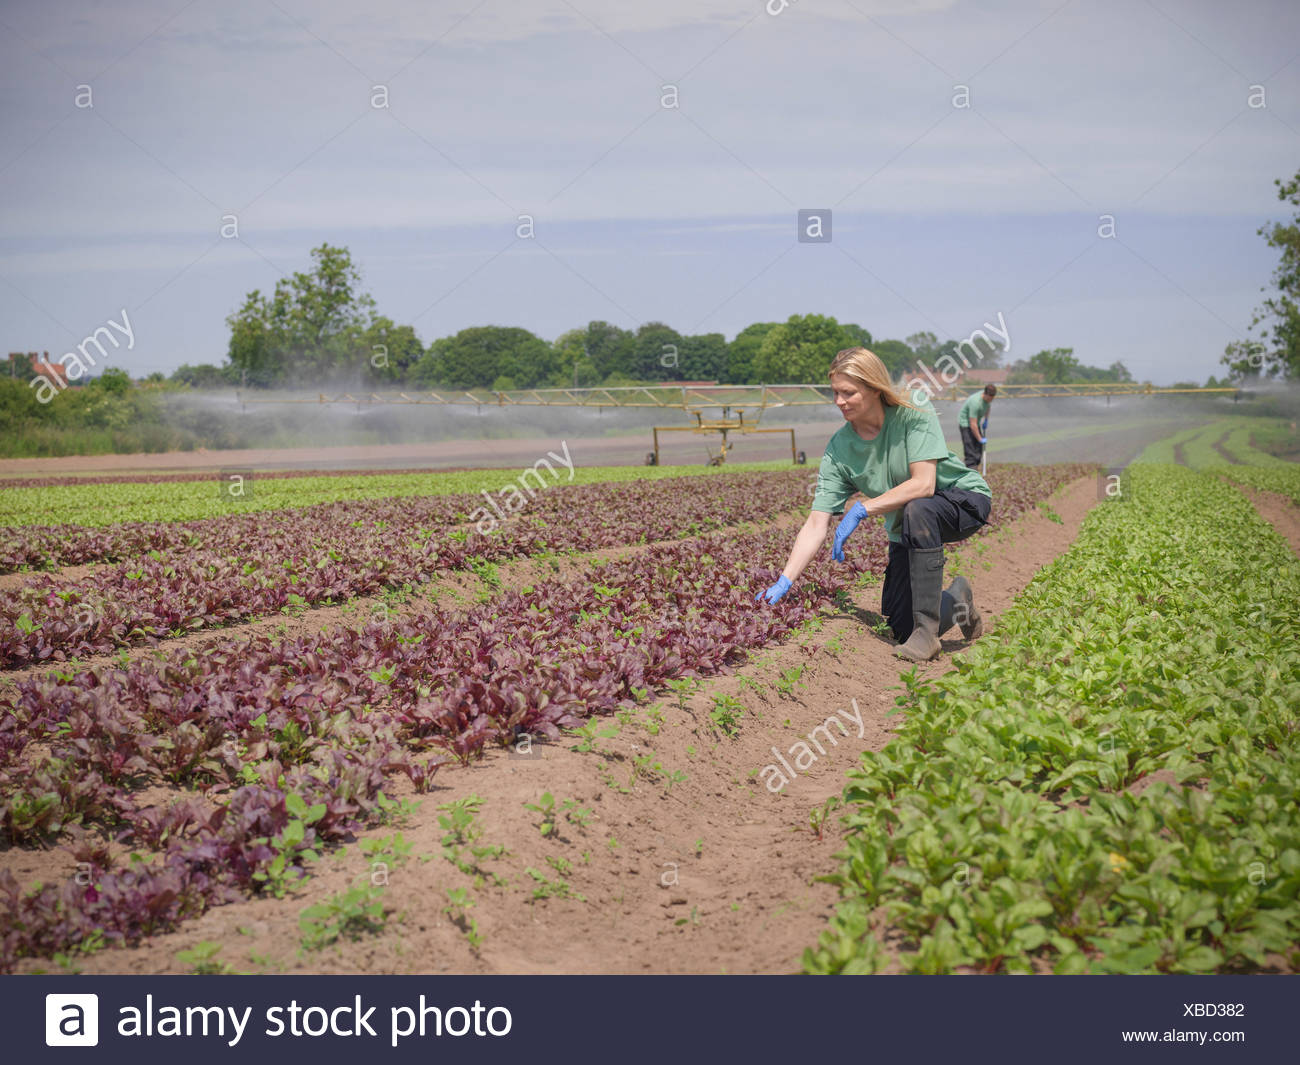 Woman inspecting salad crop Photo Stock